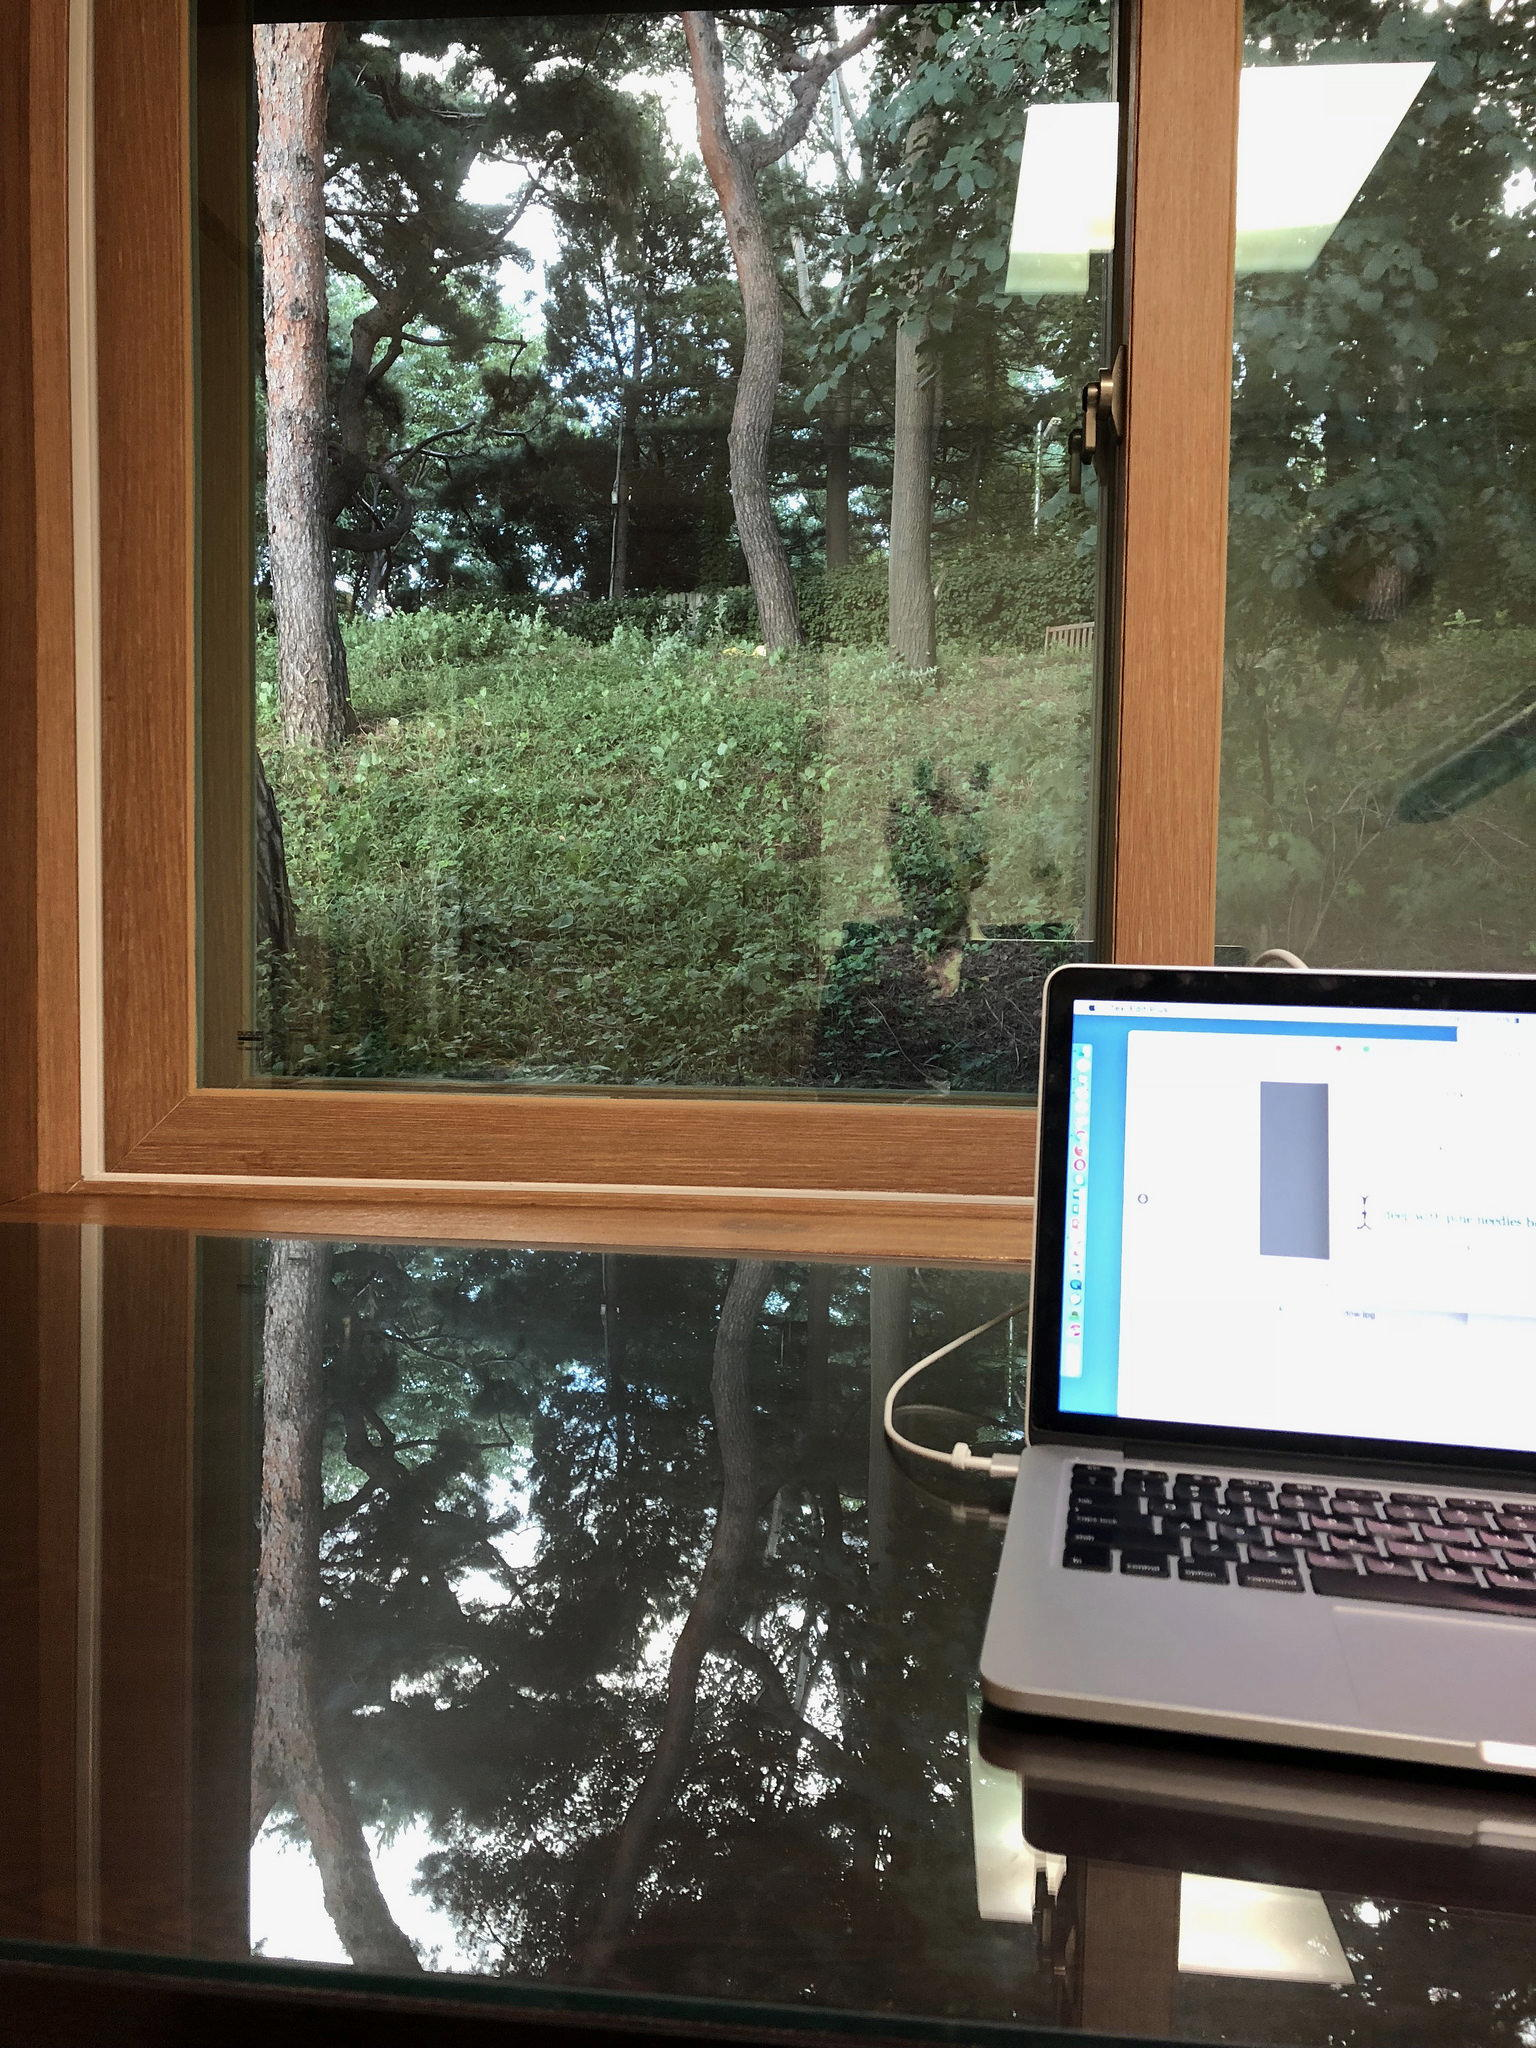 View of woods through a window in Seoul, reflected in a desk